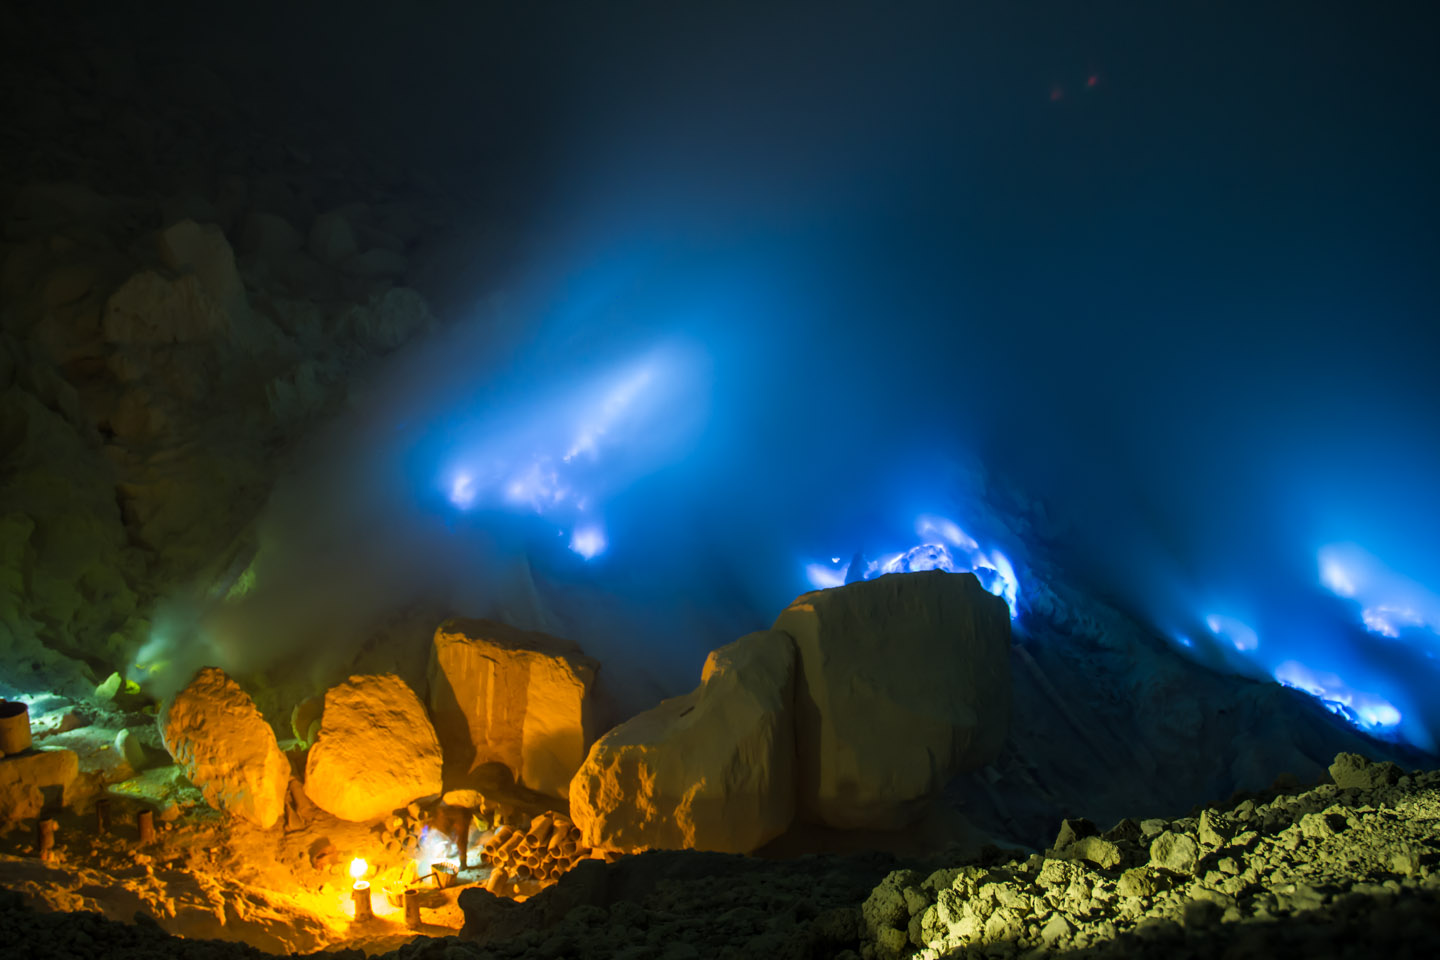 Blue Flames Ijen crater java indonesia / Blaue Flammen Krater Vulkan Indonesien